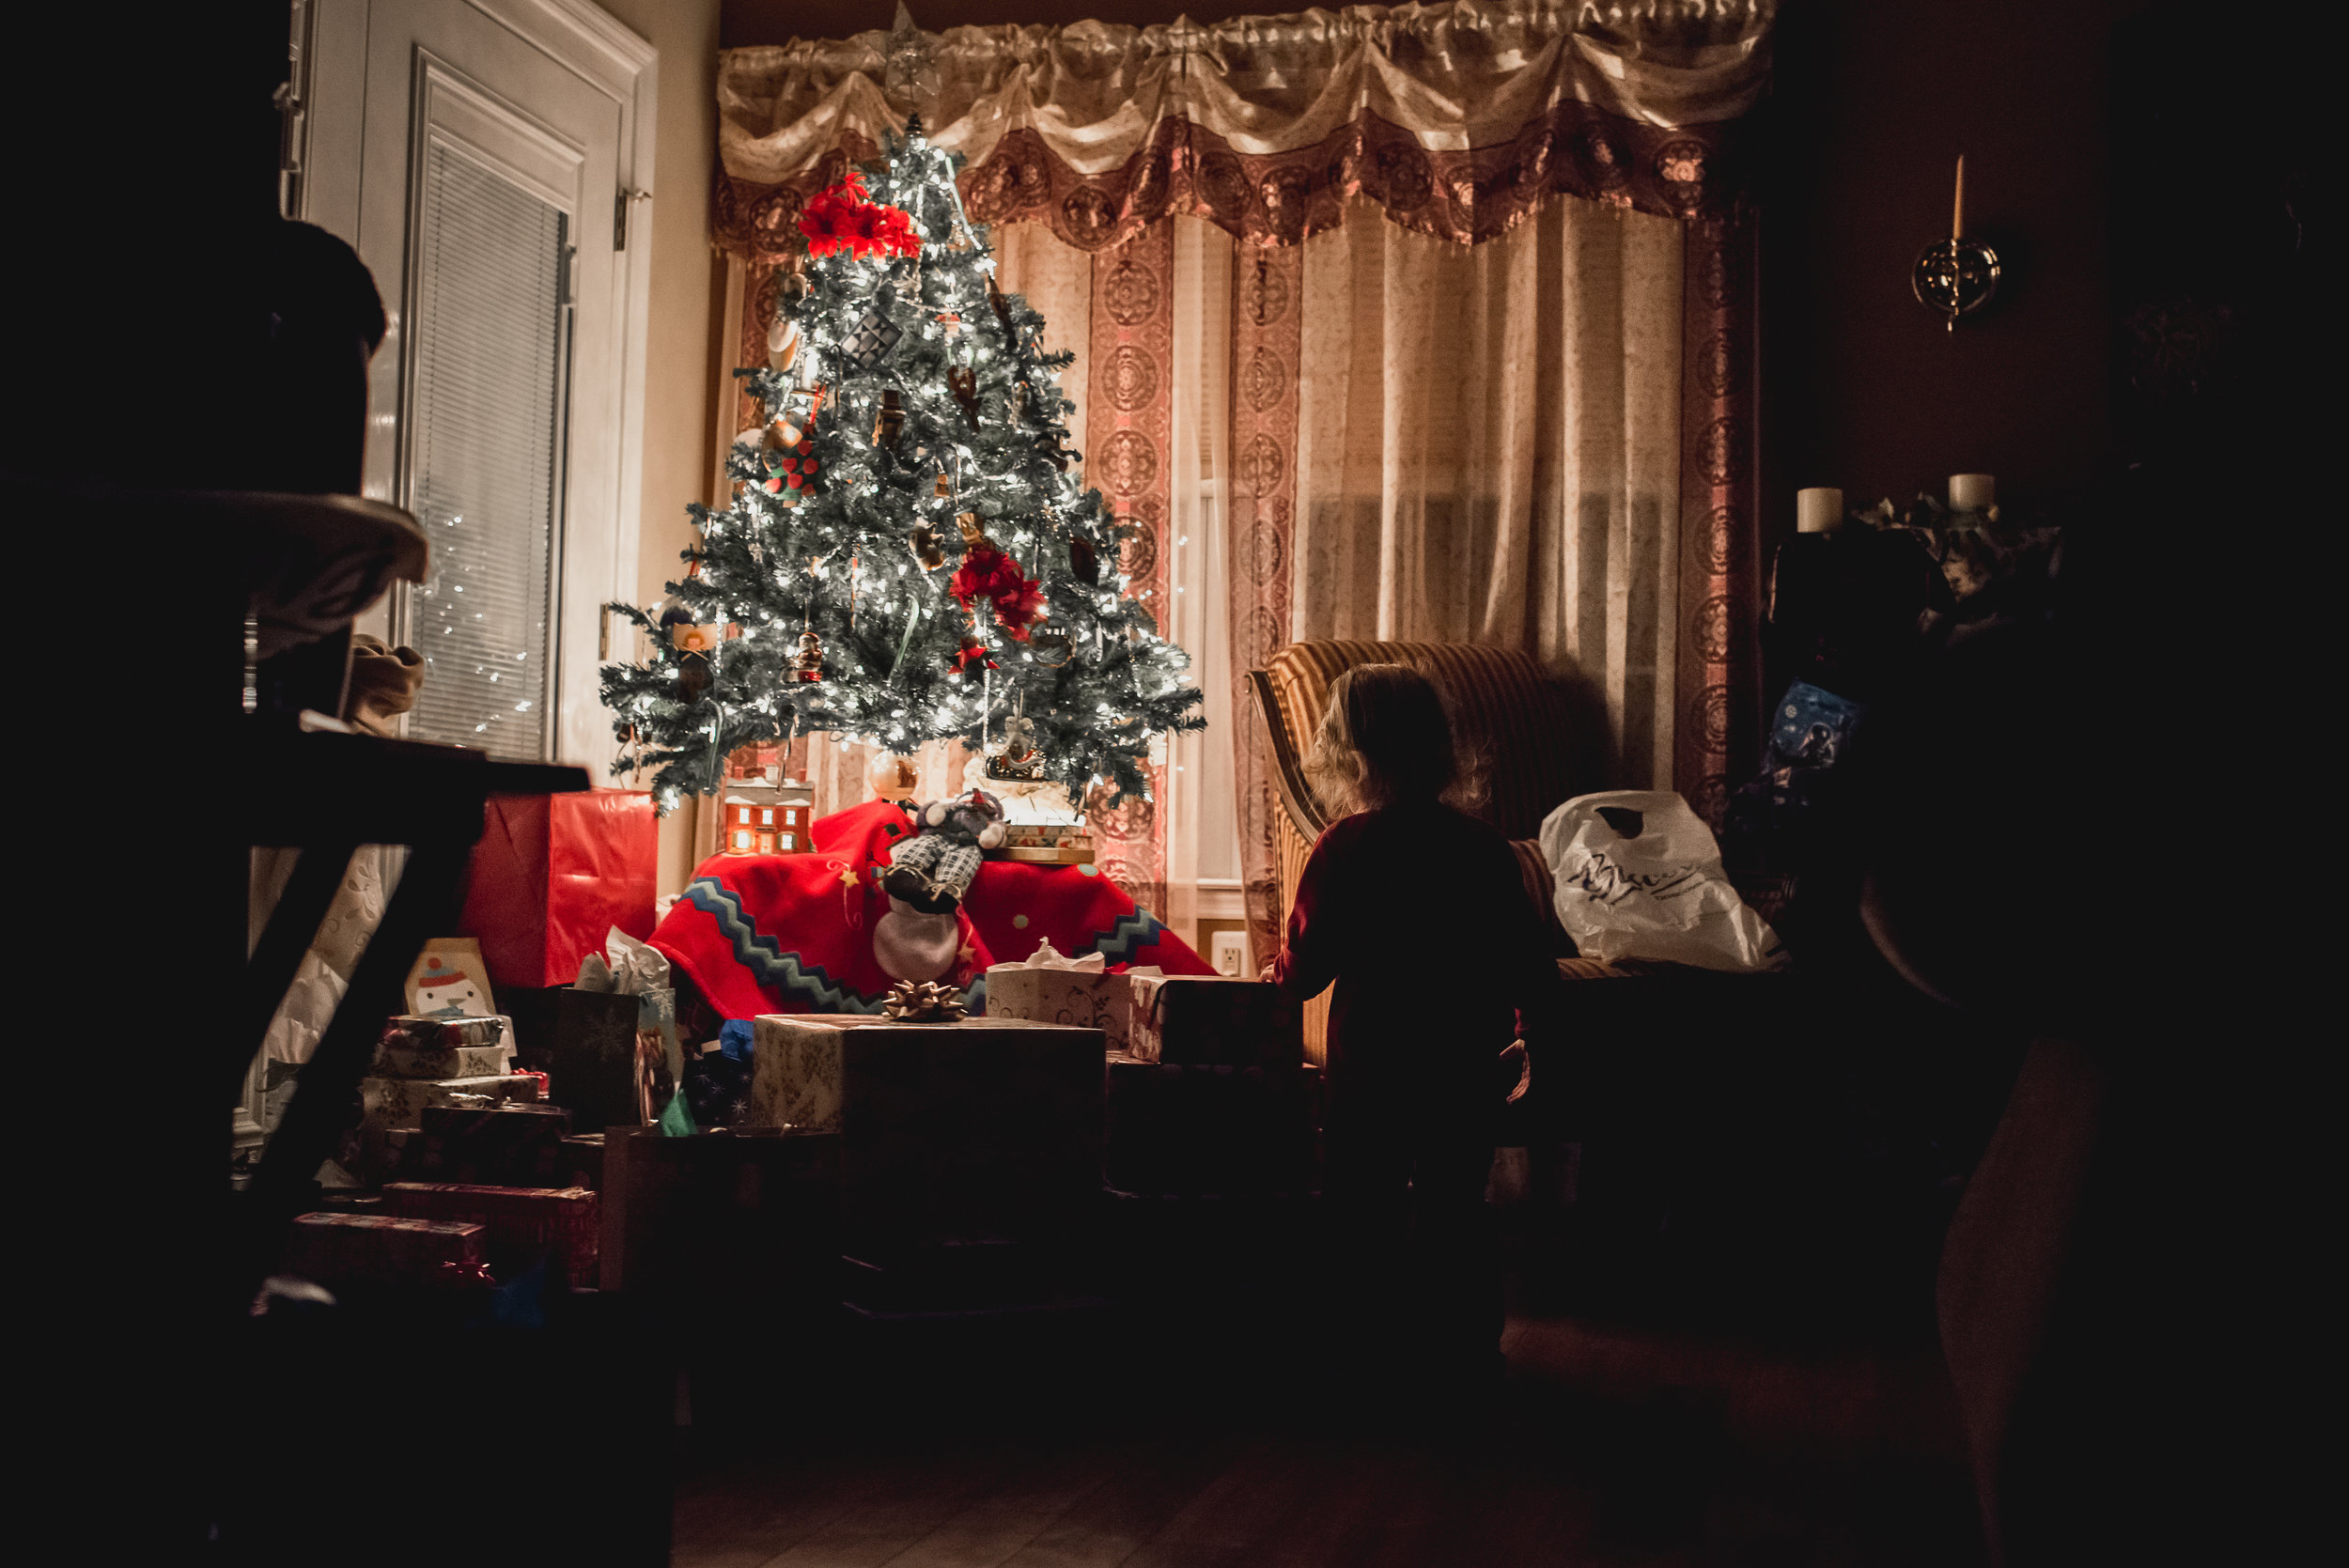 Our Christmas Story - personal documentary